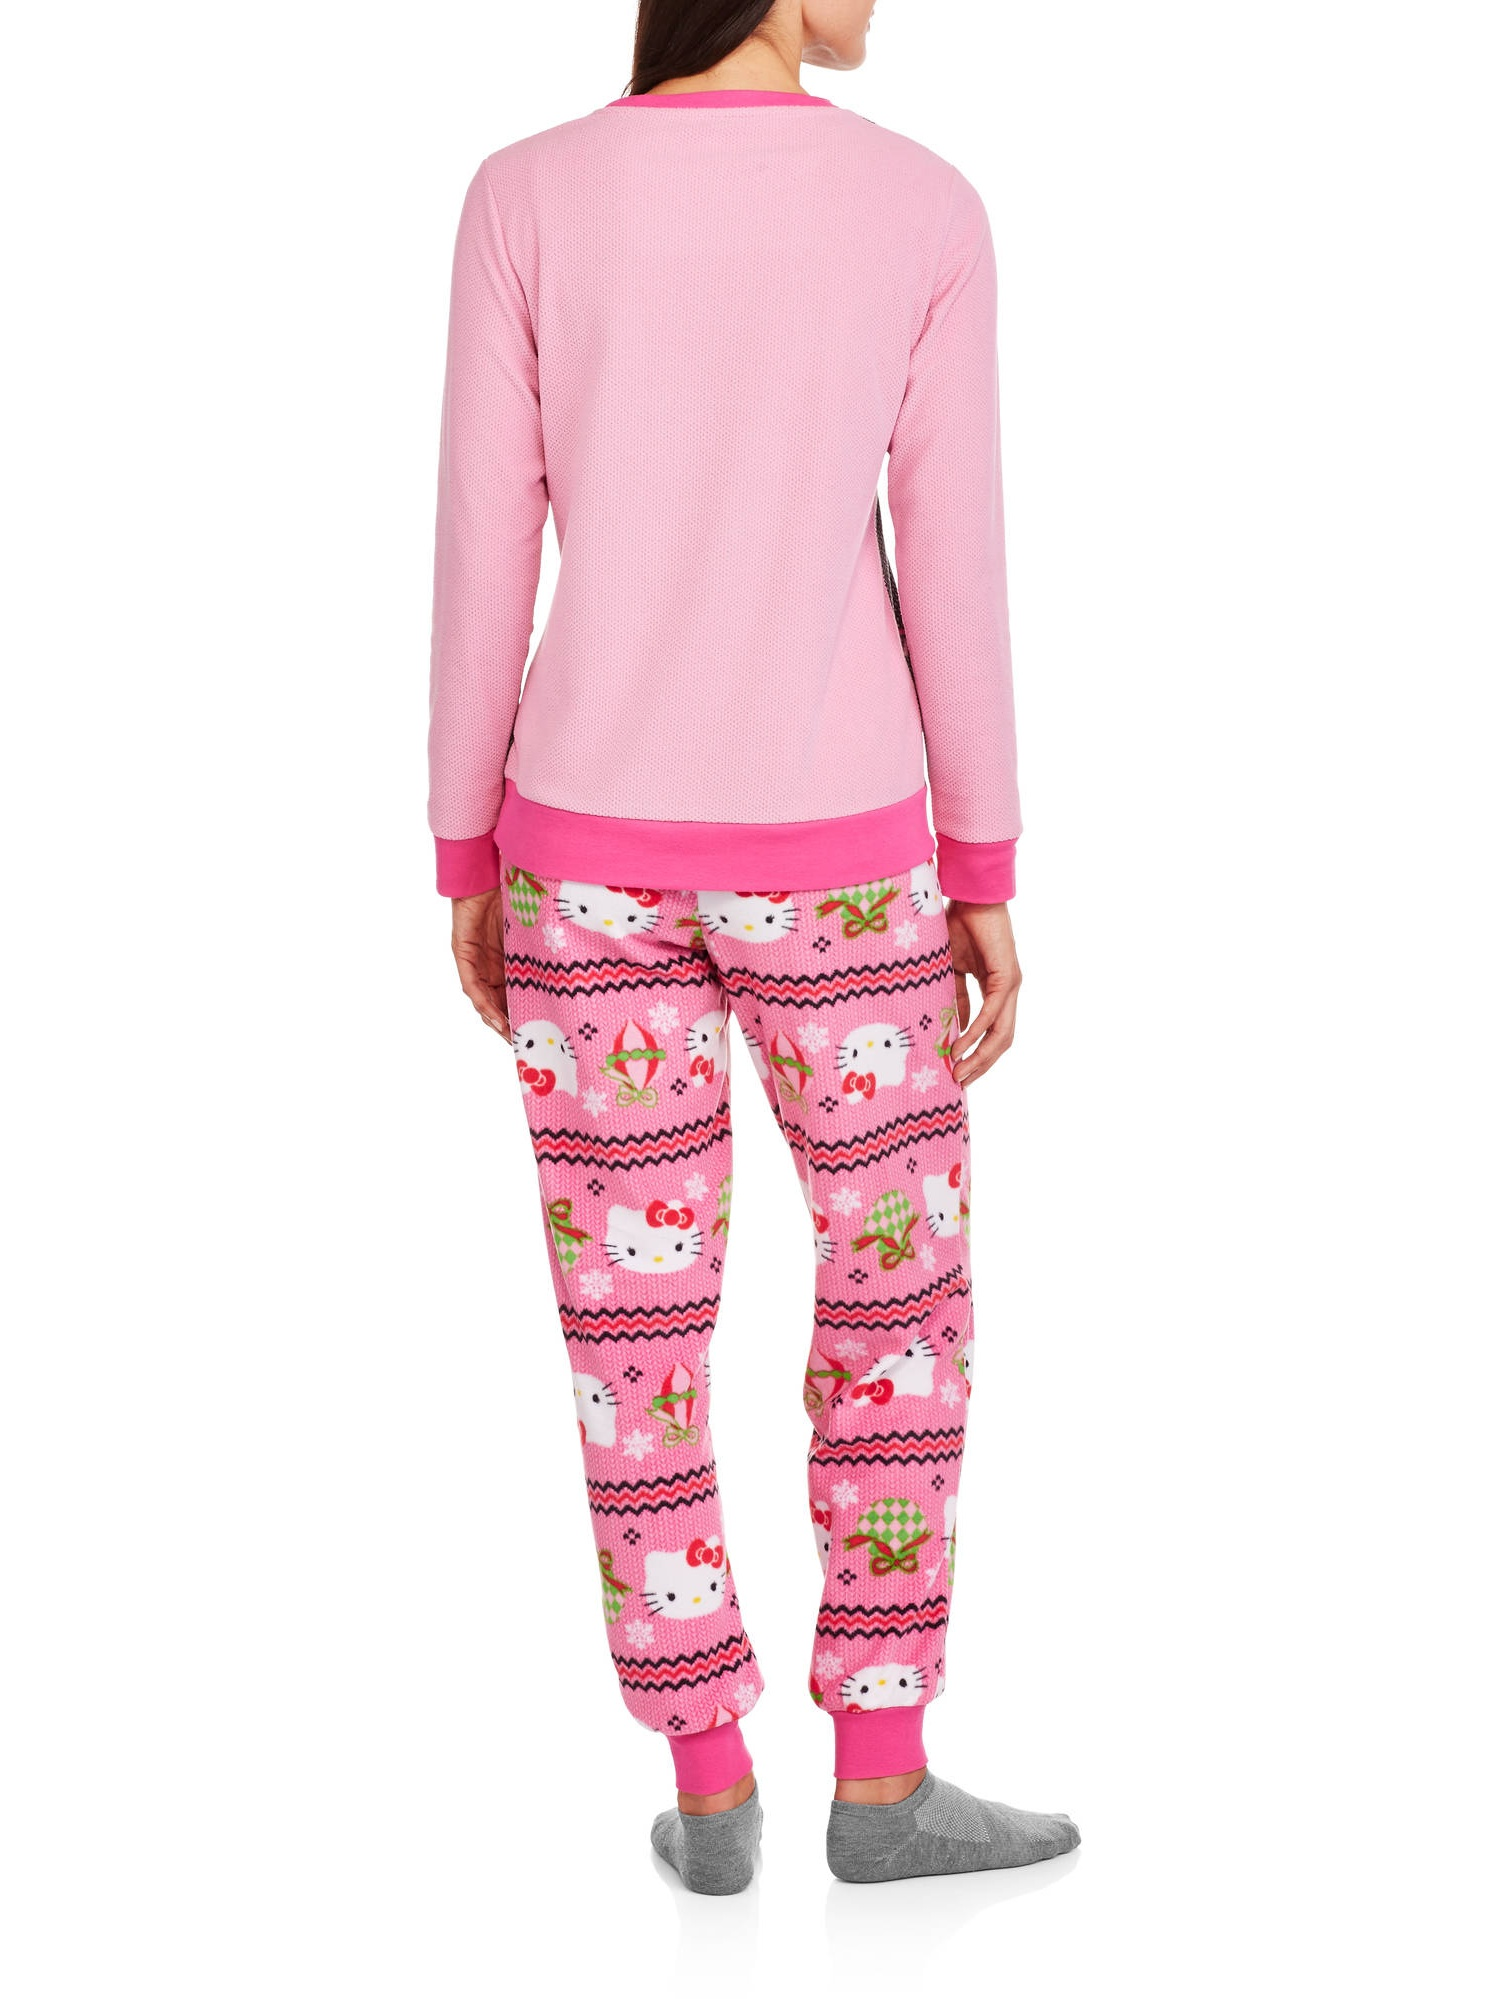 Womens Fleece Ugly Sweater Pajamas Holiday Sleep Set - Walmart.com